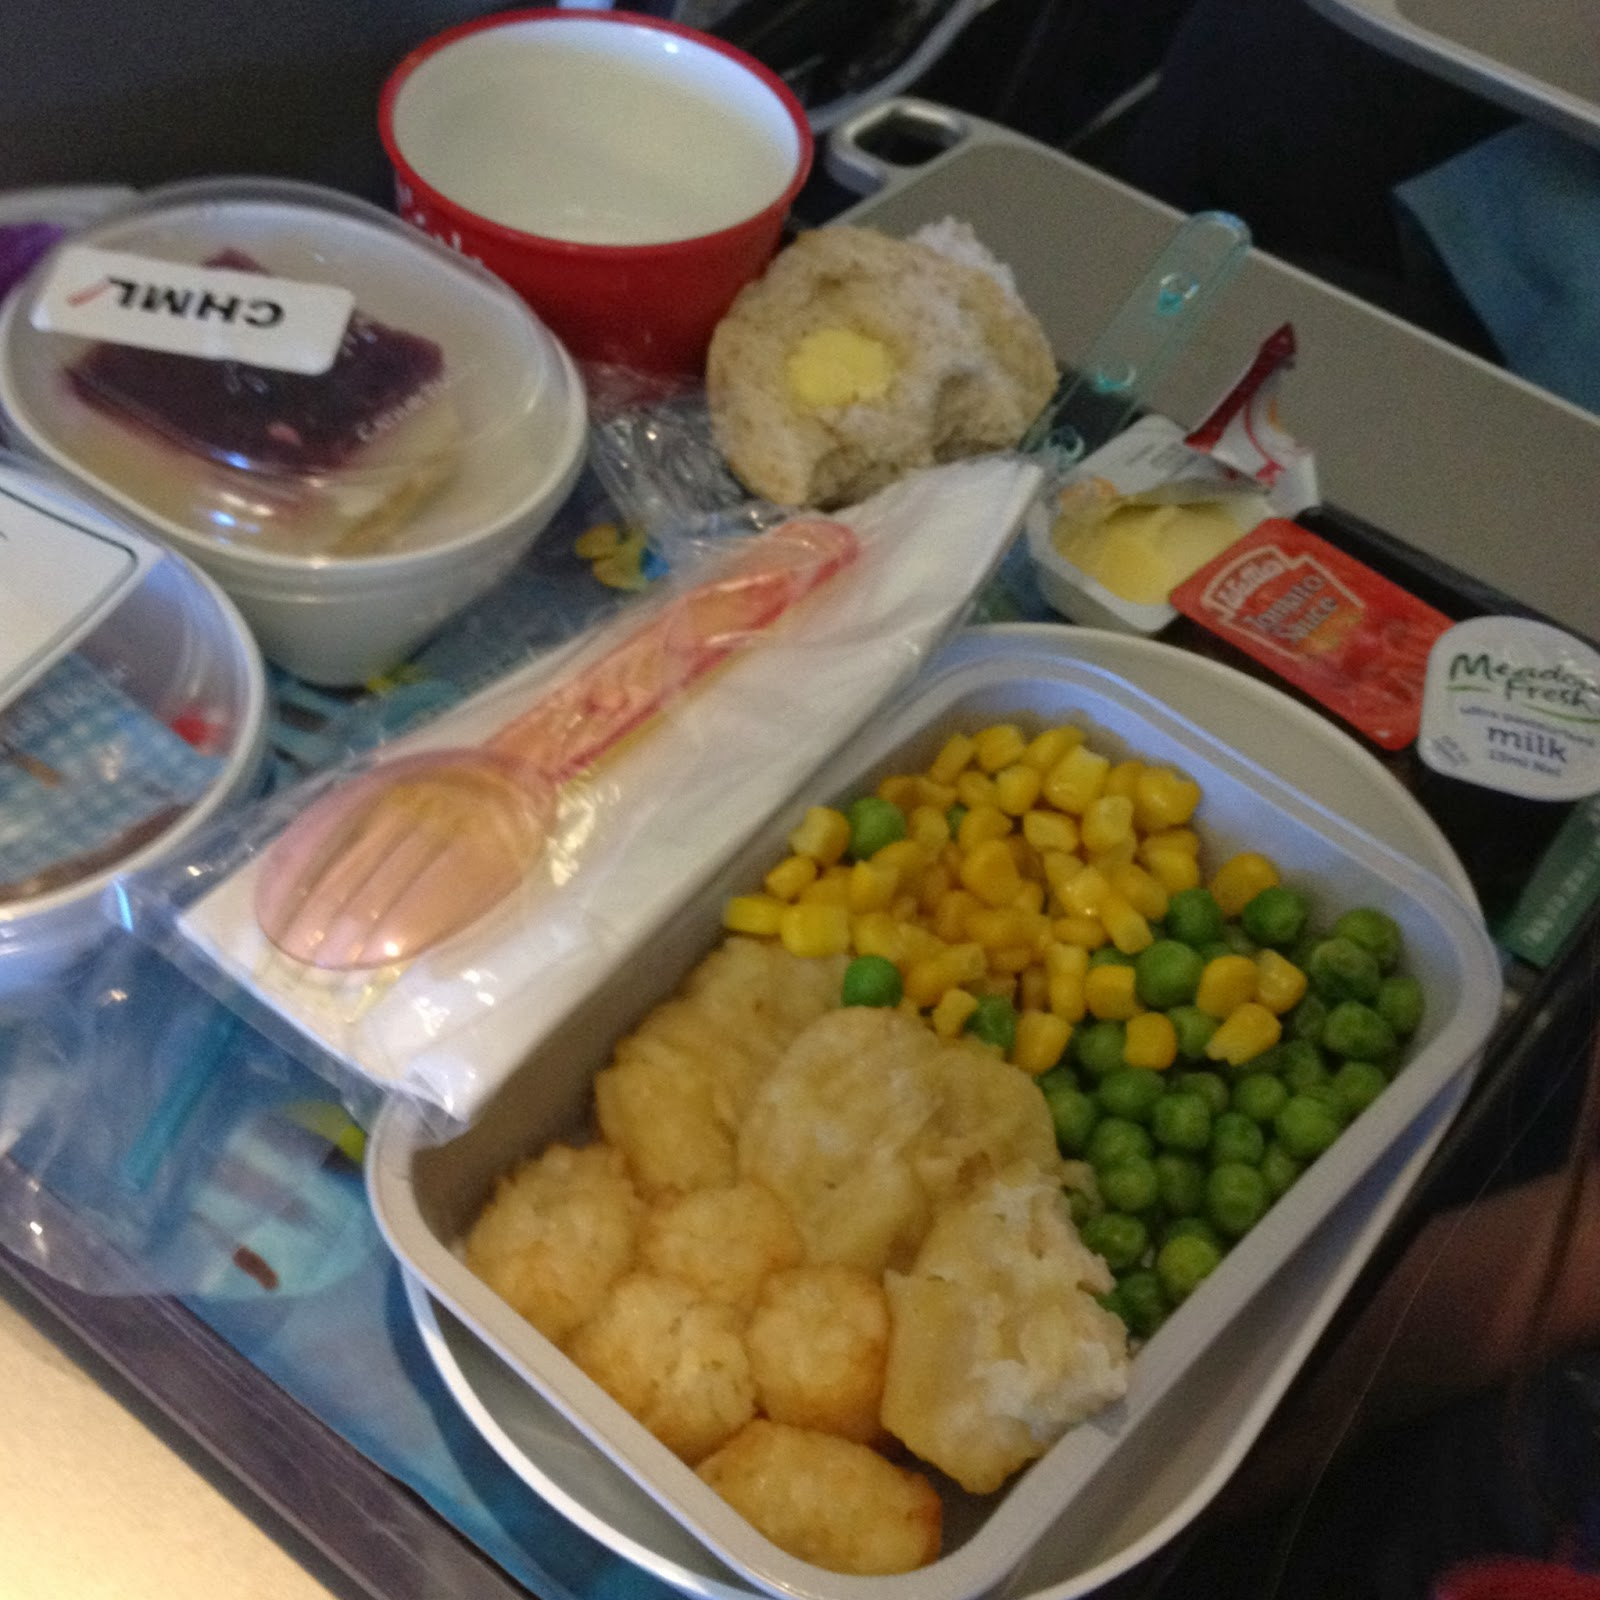 Cathay Pacific Children's Meal